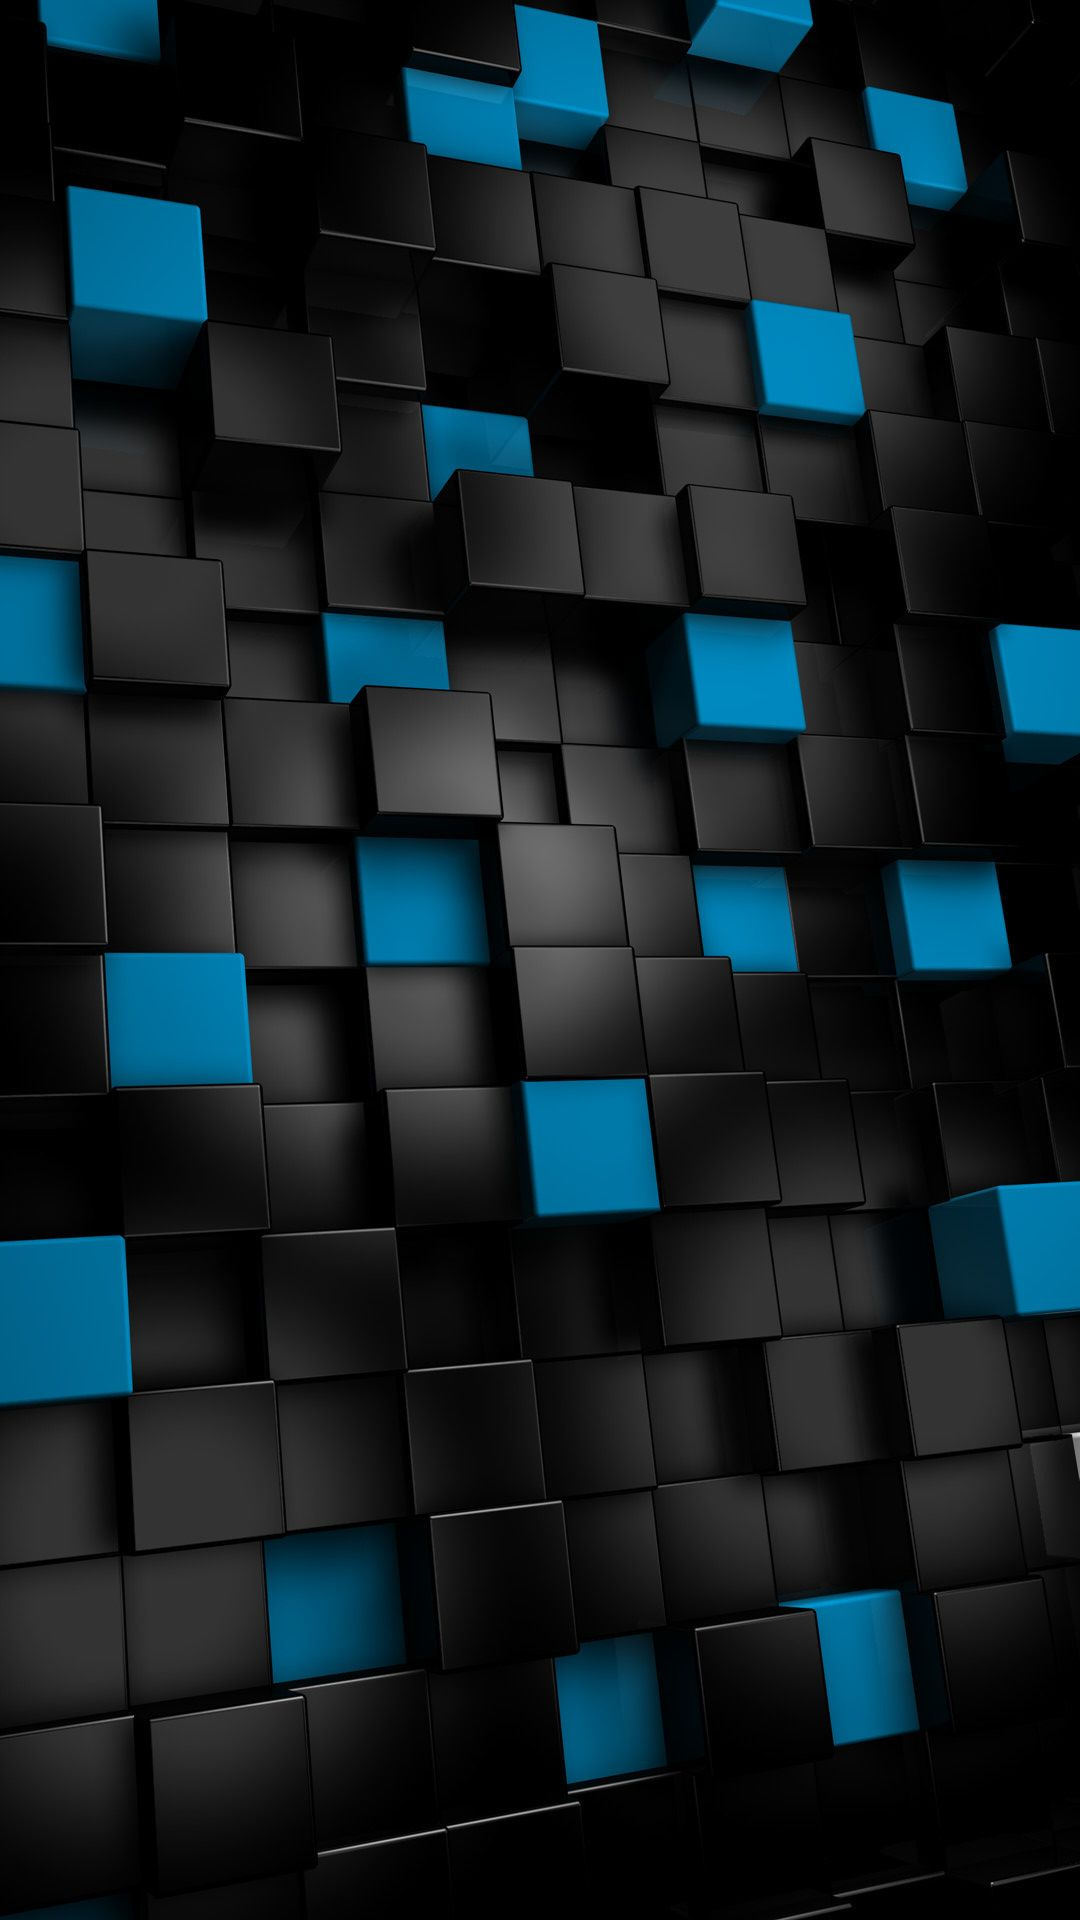 Abstract Black Cubes Htc Wallpaper Huawei Wallpapers Samsung Wallpaper